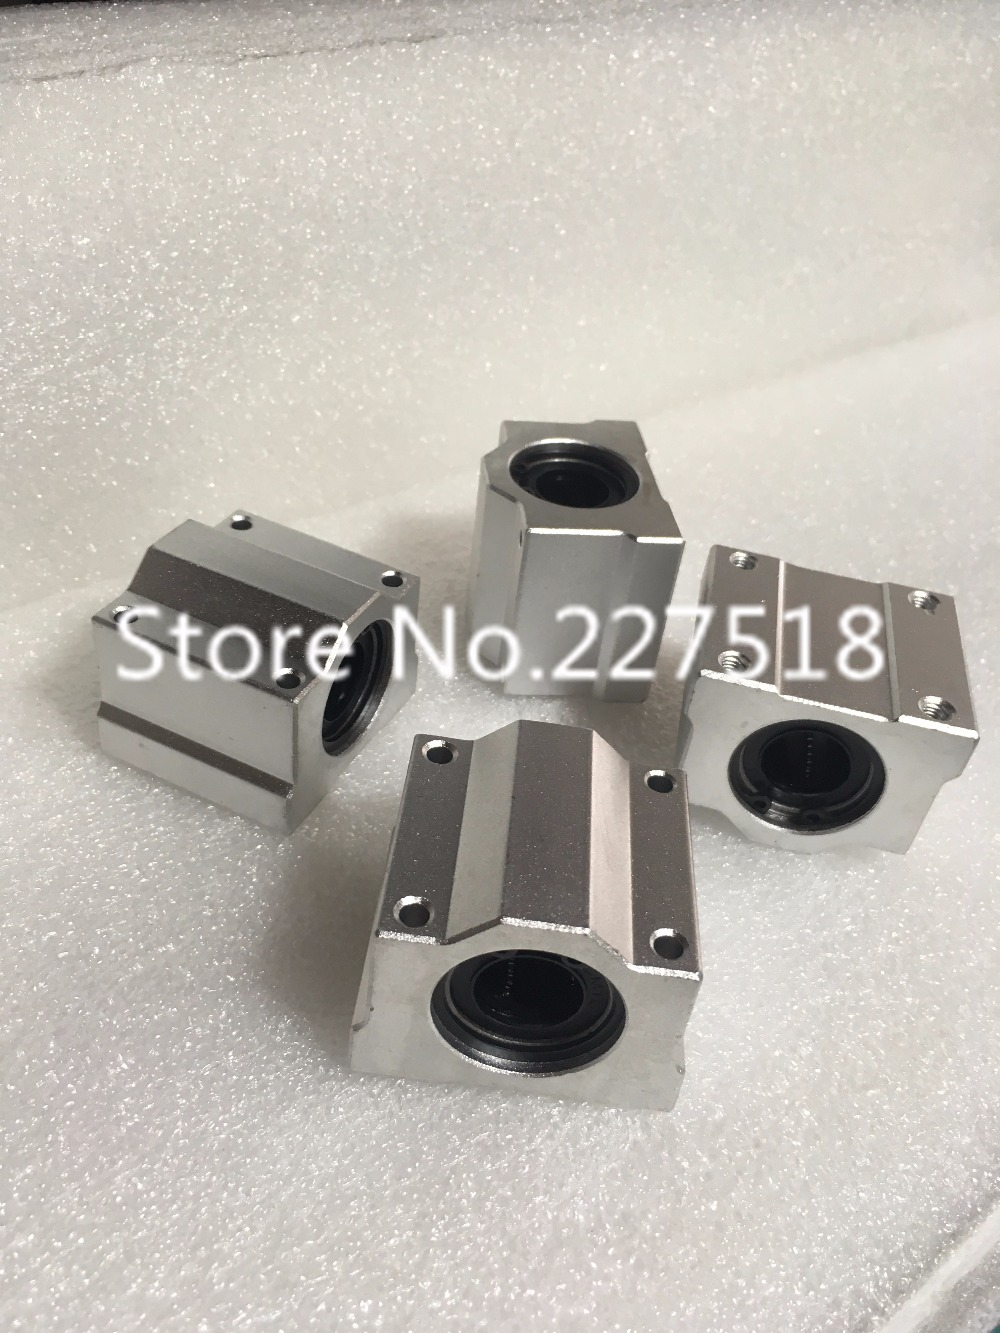 2pcs SCS30UU 30mm linear guide Linear axis ball bearing block with LM30UU bush, pillow block linear unit for CNC part sc10uu scs10uu 10mm linear axis ball bearing block bearing pillow bolck linear unit for cnc